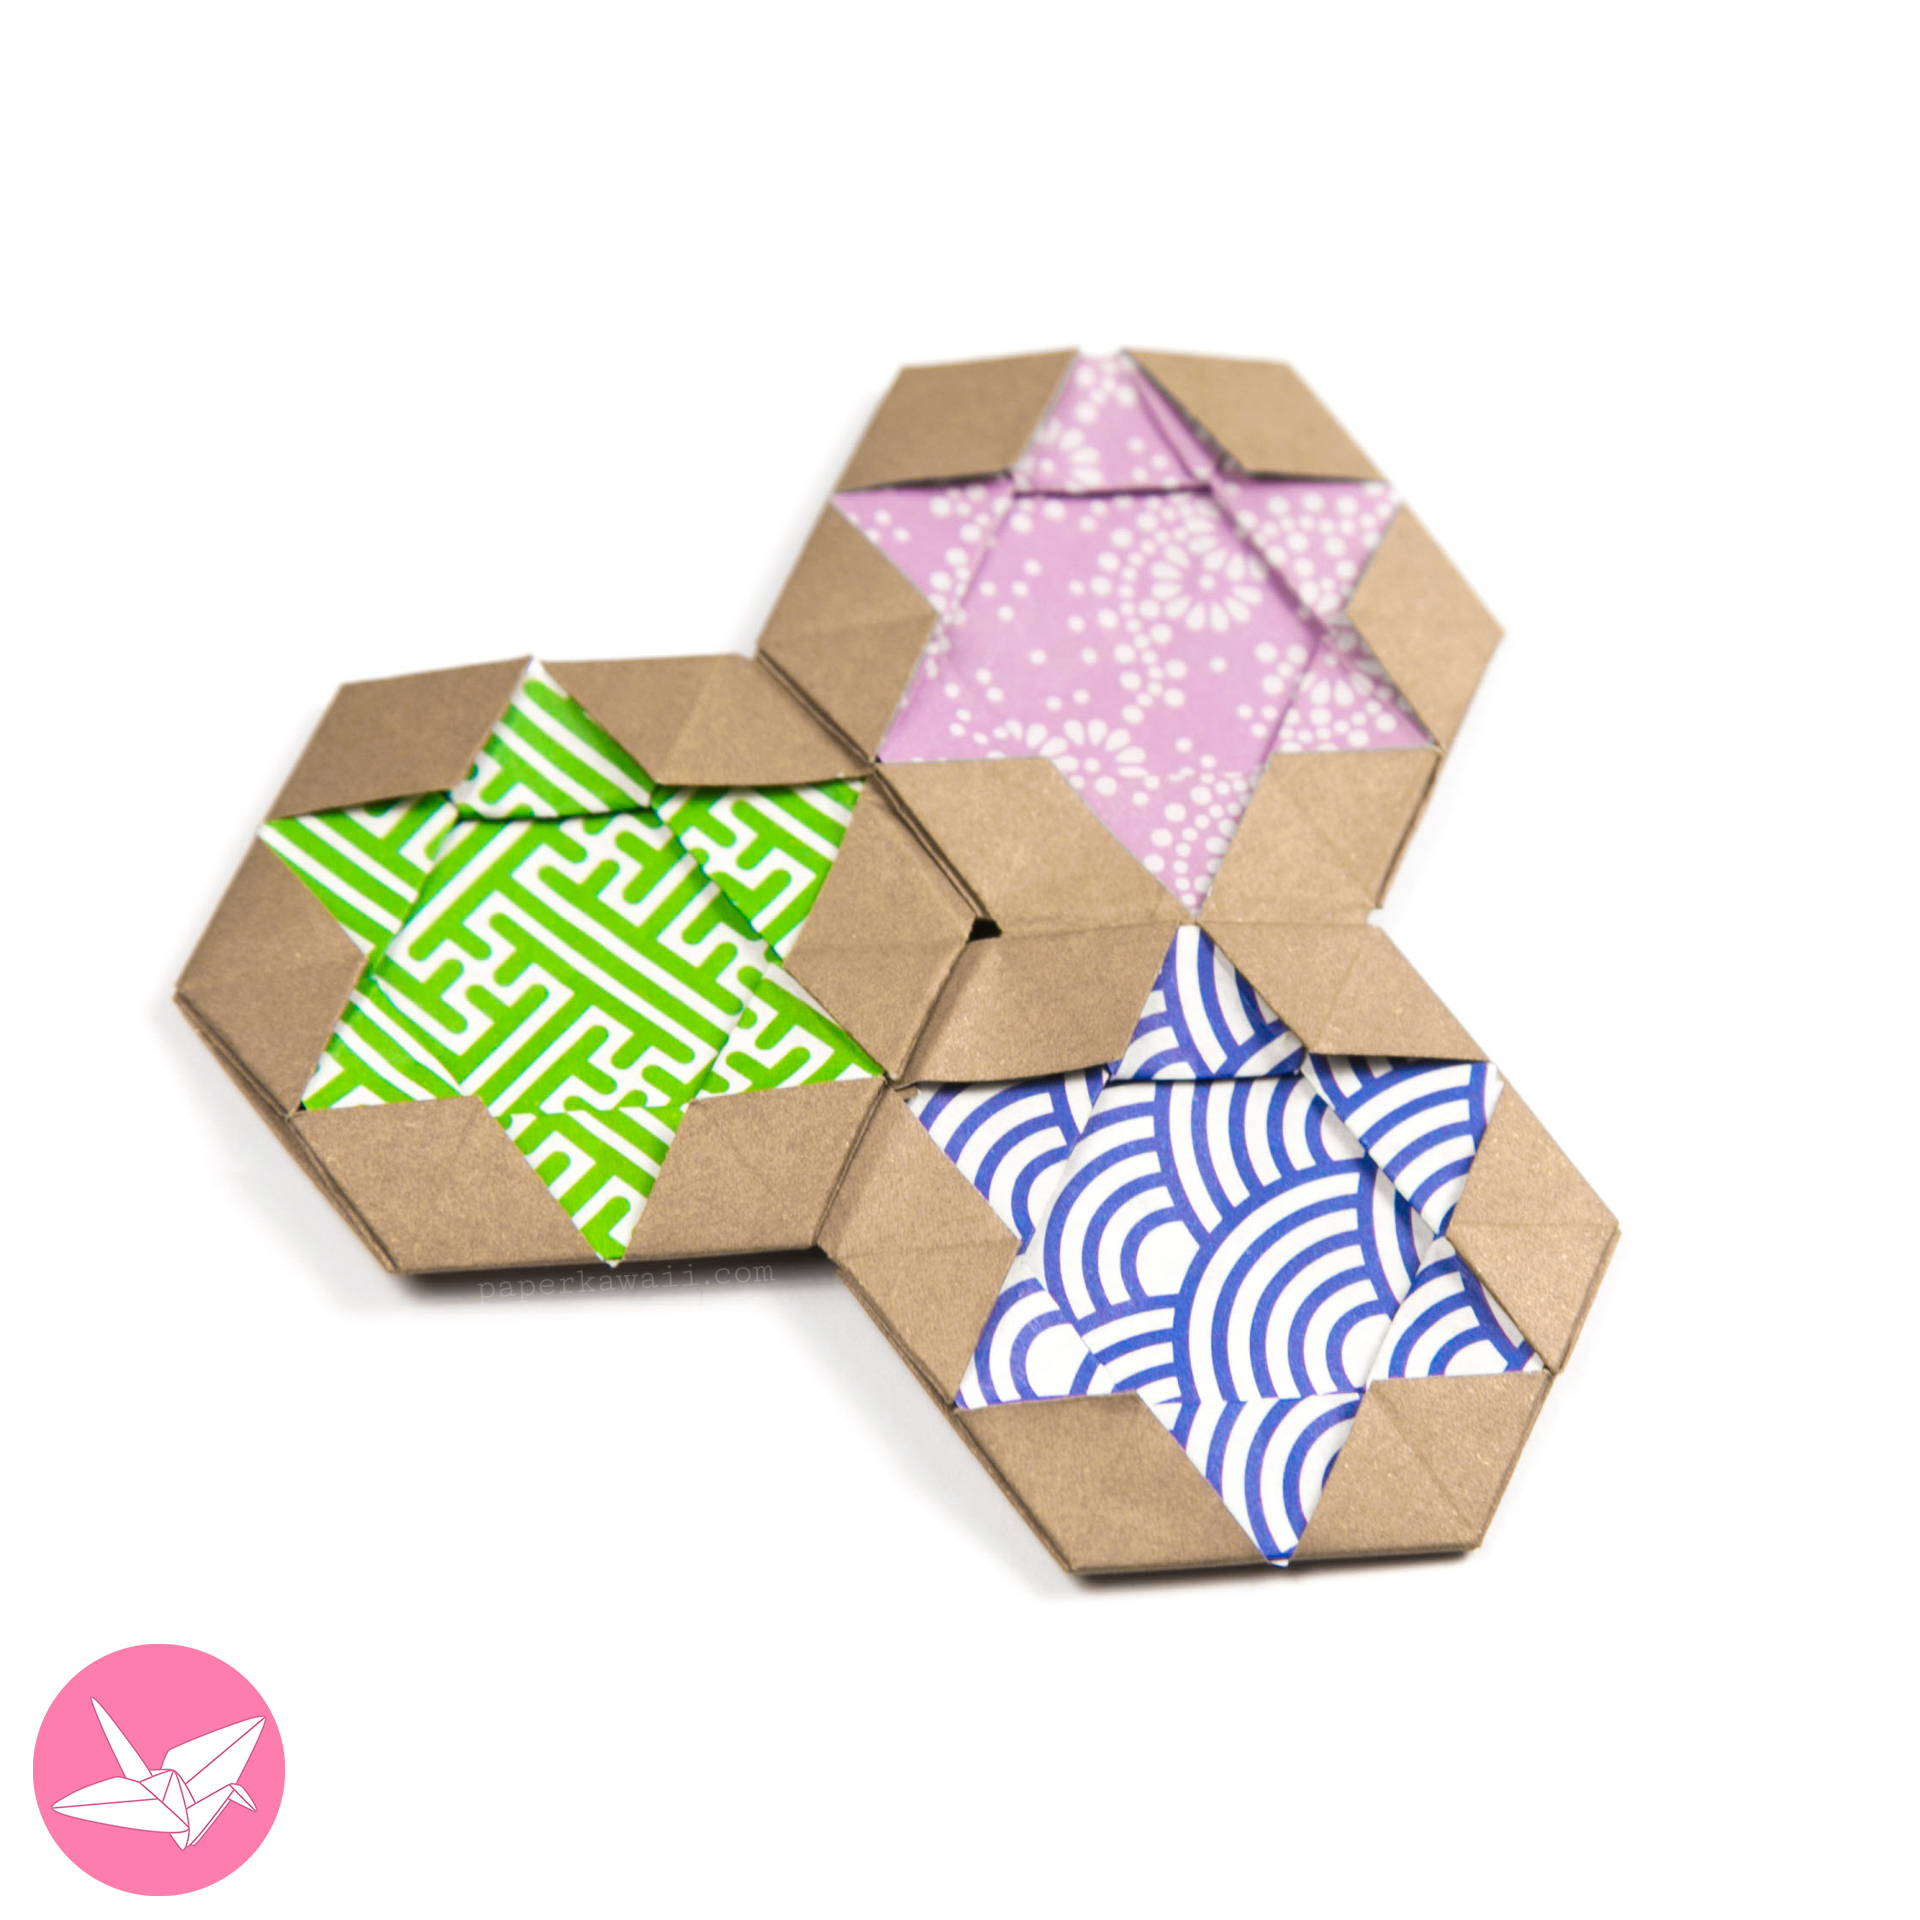 Origami bamboo letterfold folding instructions - Origami Star Of David Hexagram Coaster Tiles Tato